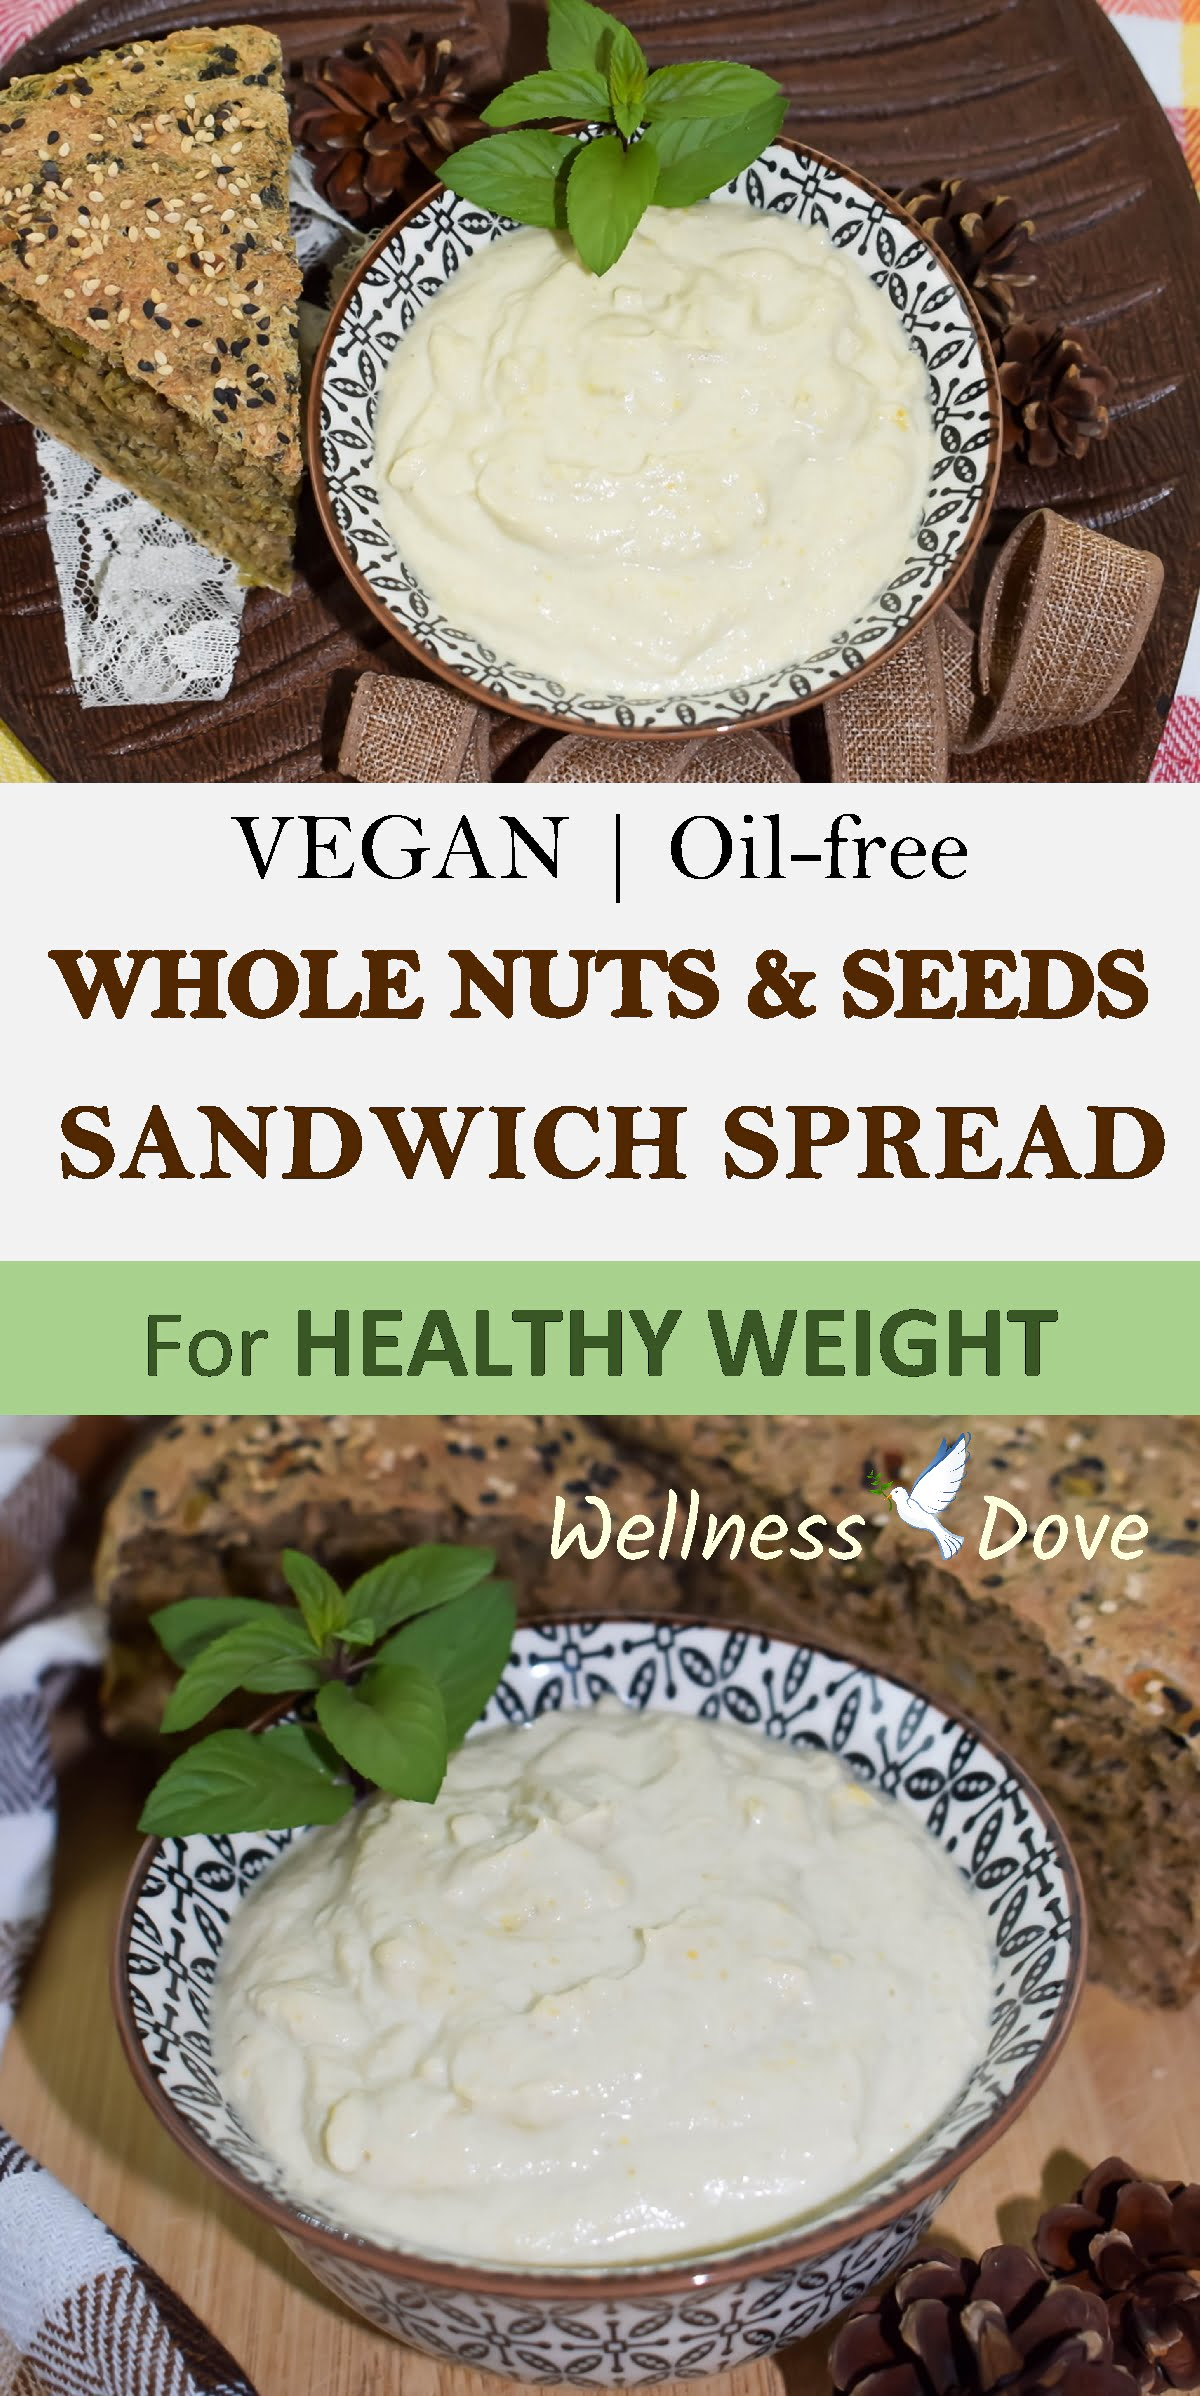 Delicious and creamy sandwich spead! Super healthy and nutritious. This is a whole food plant-based recipe without any added oils. Easy and quick to prepare, ready in just a few minutes. We find it really helpful, especially when we are in a hurry. Cashews and sunflower seeds are packed with healthy whole food fatty acids. All you need to enjoy this spread is just a small amount on a loaf of bread with several slices of fresh tomato. A healthy and filling snack our a quick and satiating lunch. You choose!